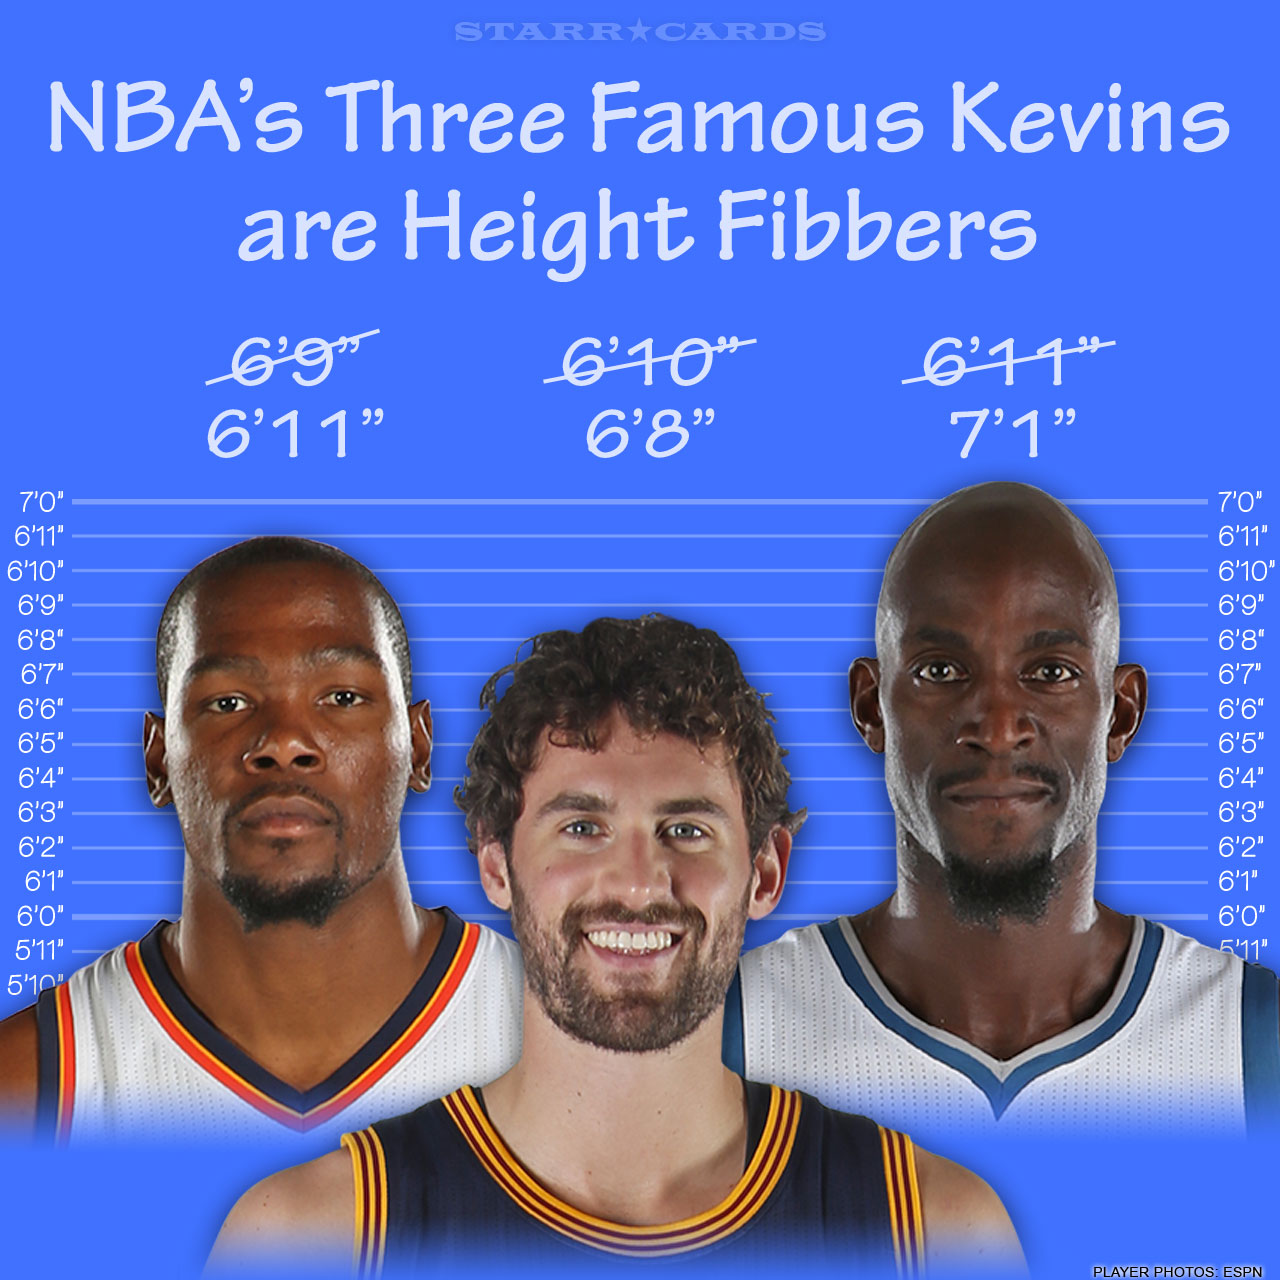 Kevin Durant, Kevin Love and Kevin Garnett all fib about their height